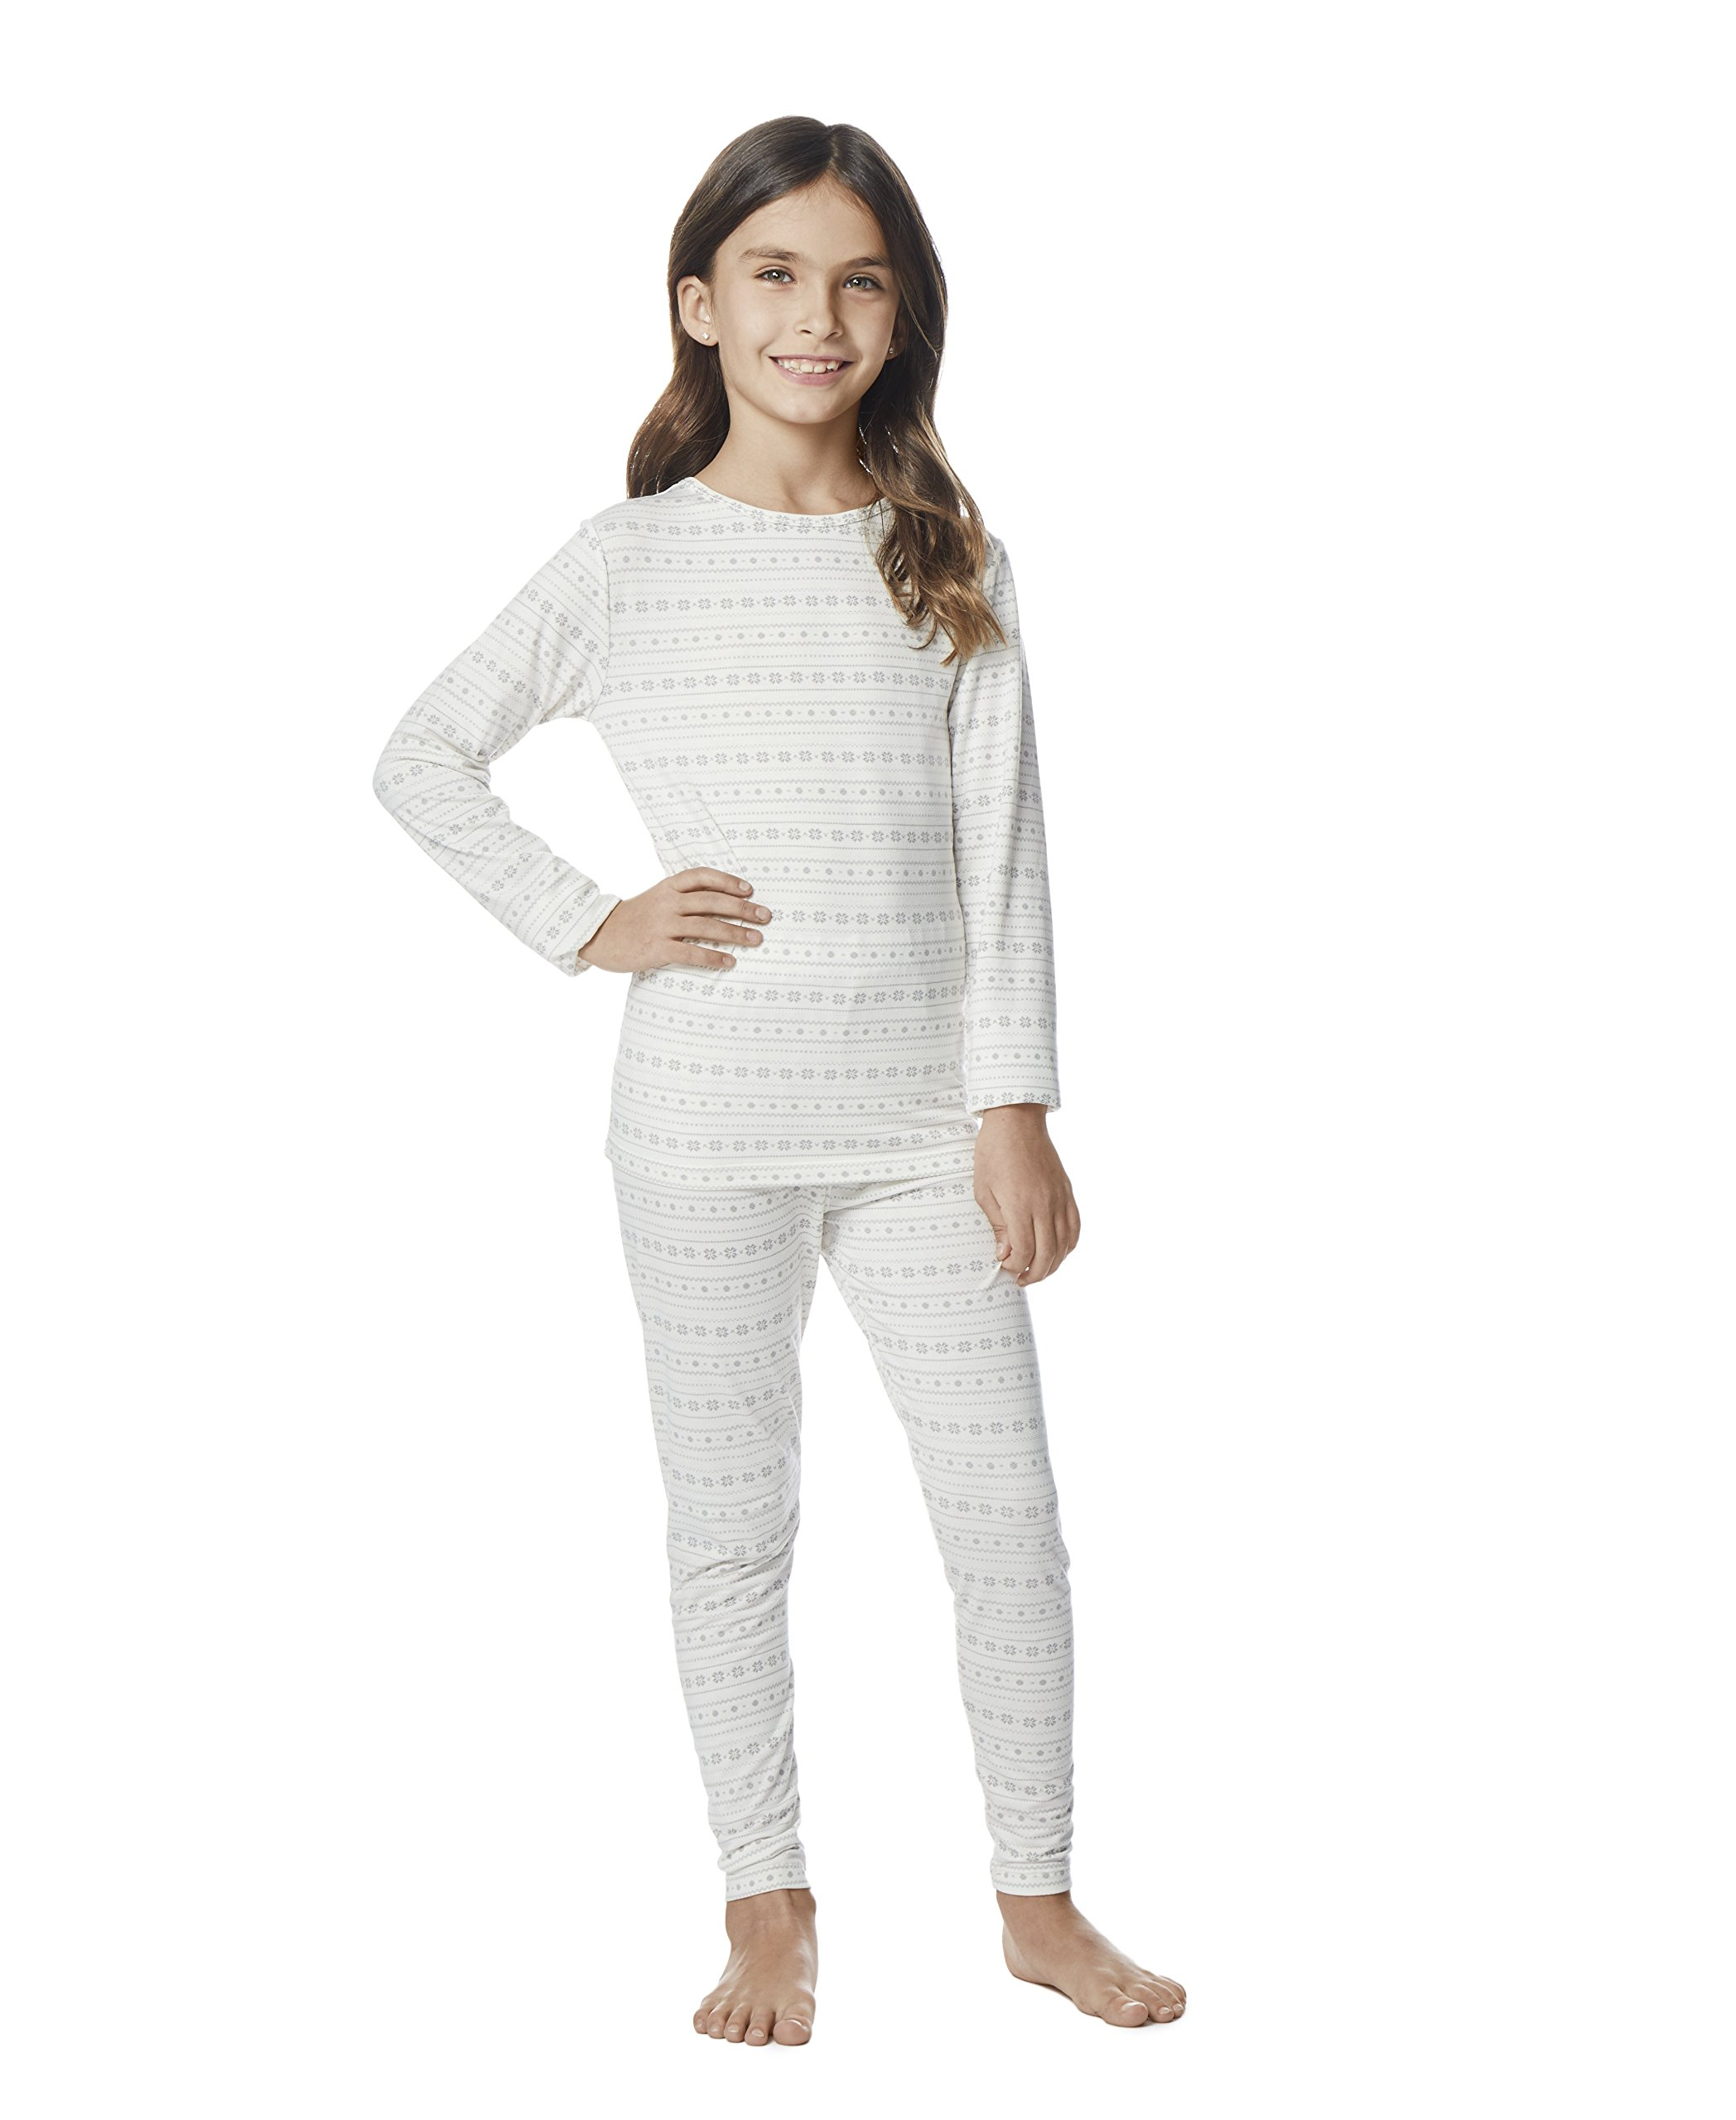 Kids Heat Baselayer Set, Vanilla Snowflake, Medium